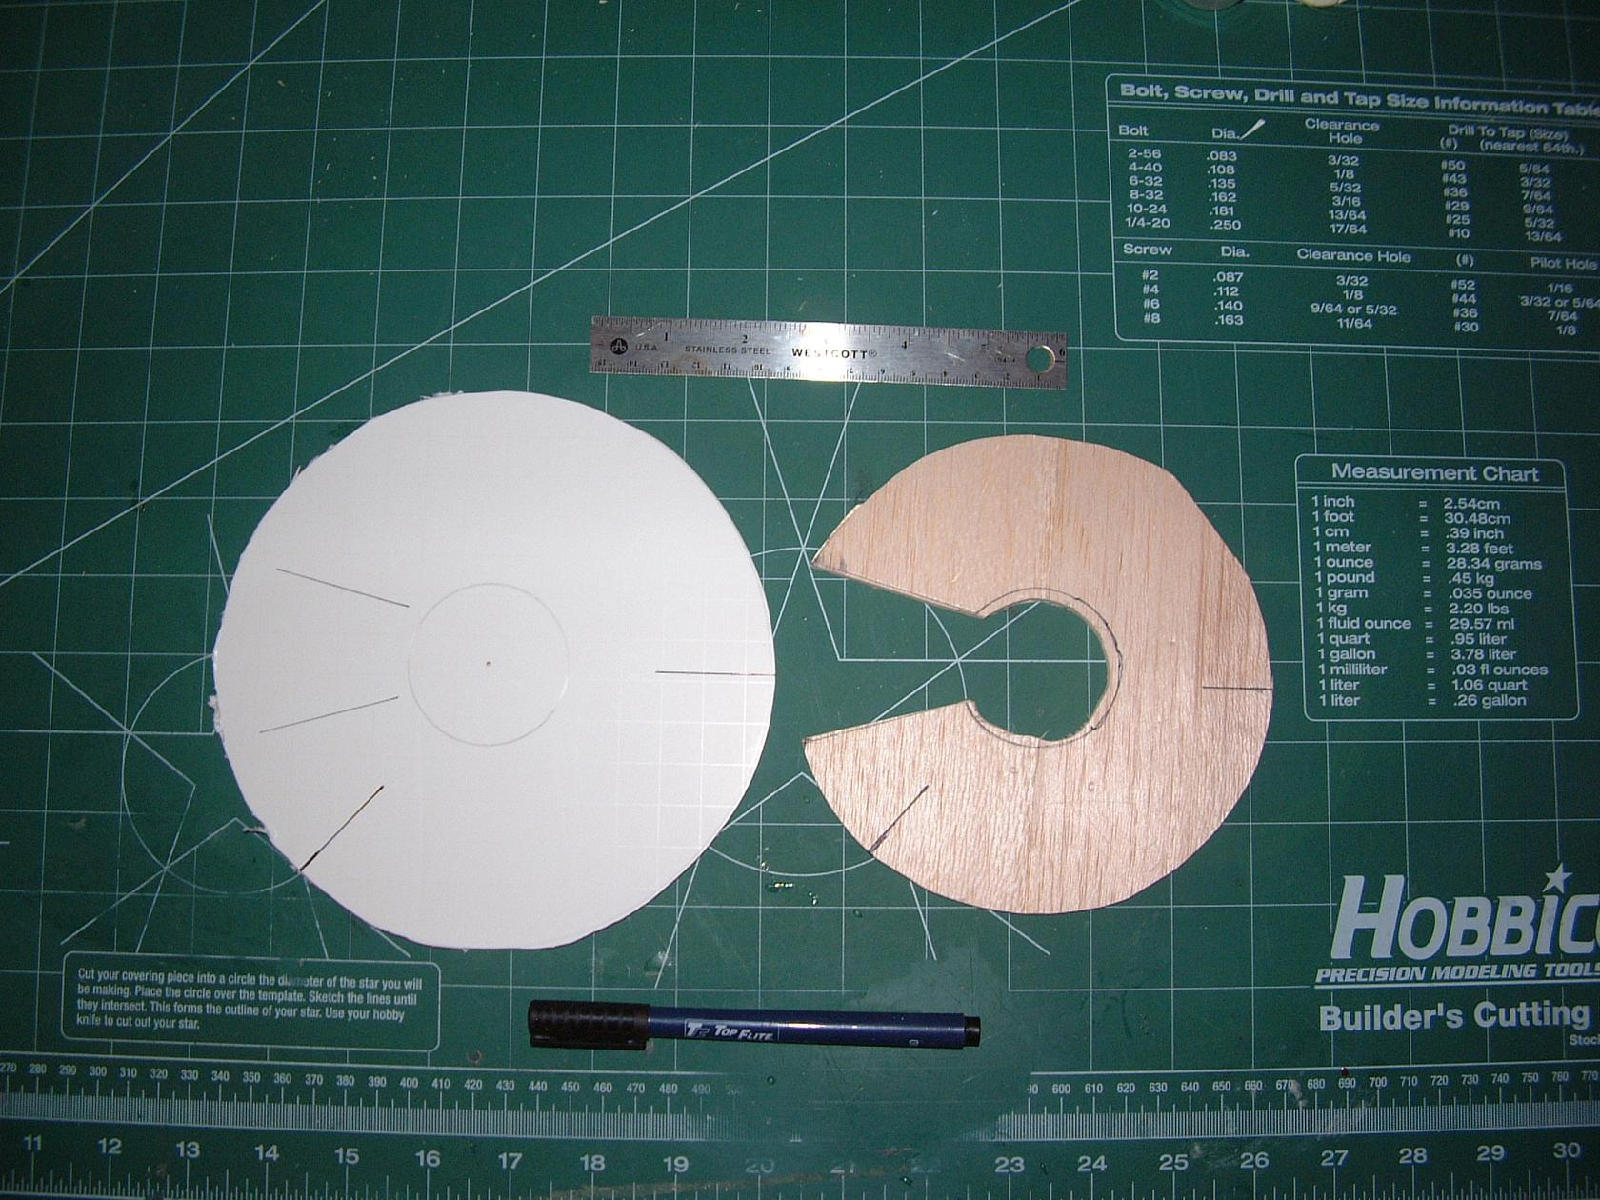 Final backing was made of thin foam-board.